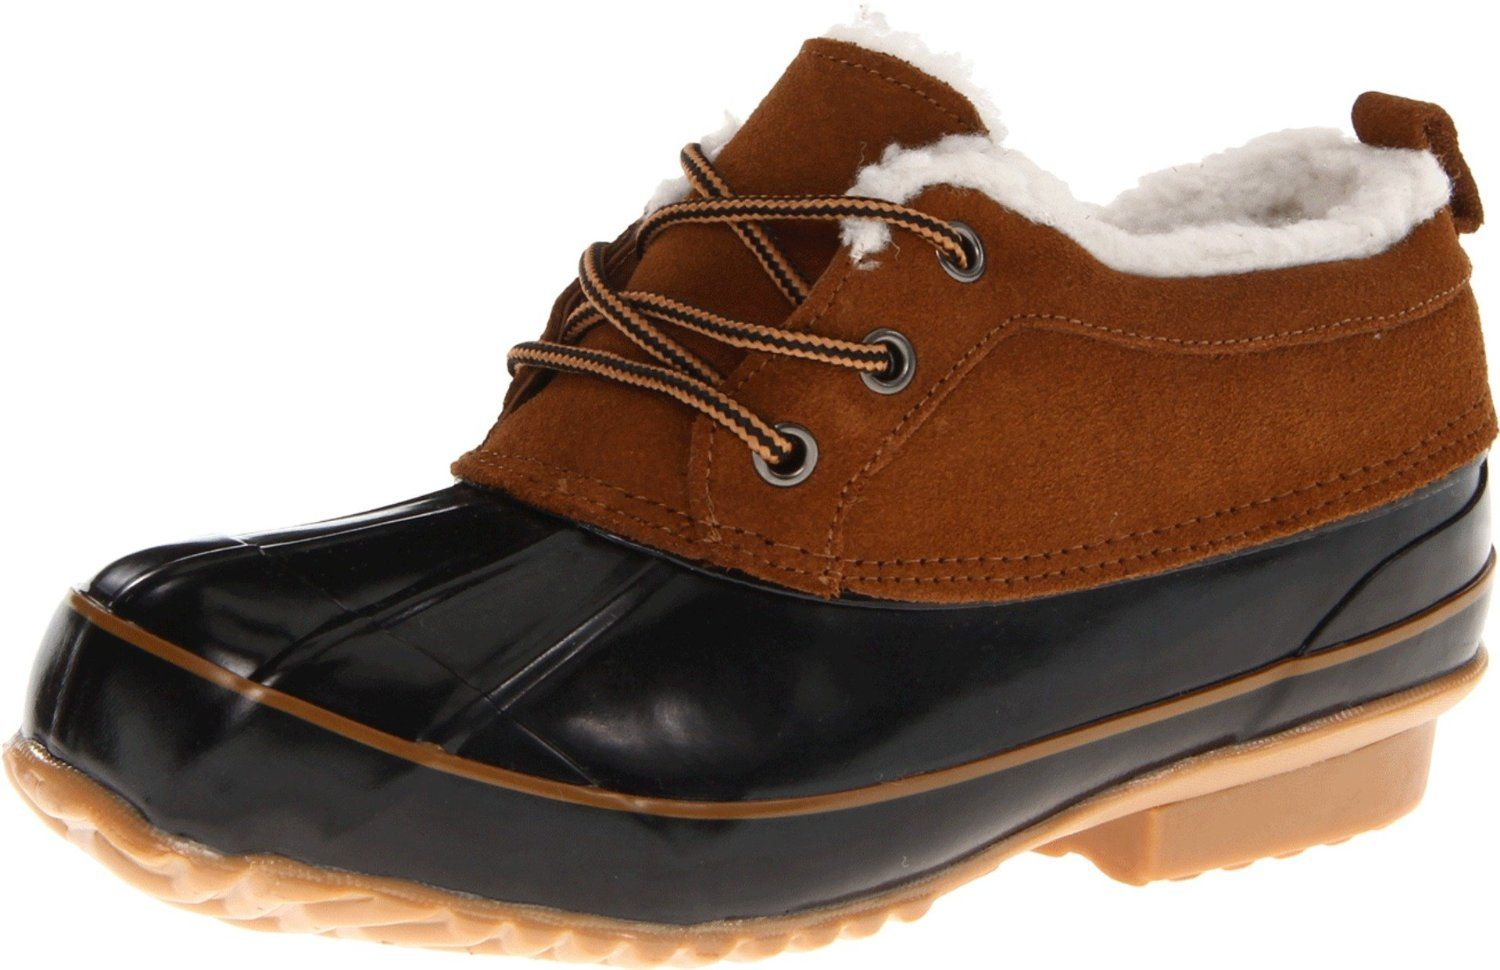 2fe4f5d0efd91 Fall Winter shoes to keep you warm on a snuggly night. Amazon.com ...